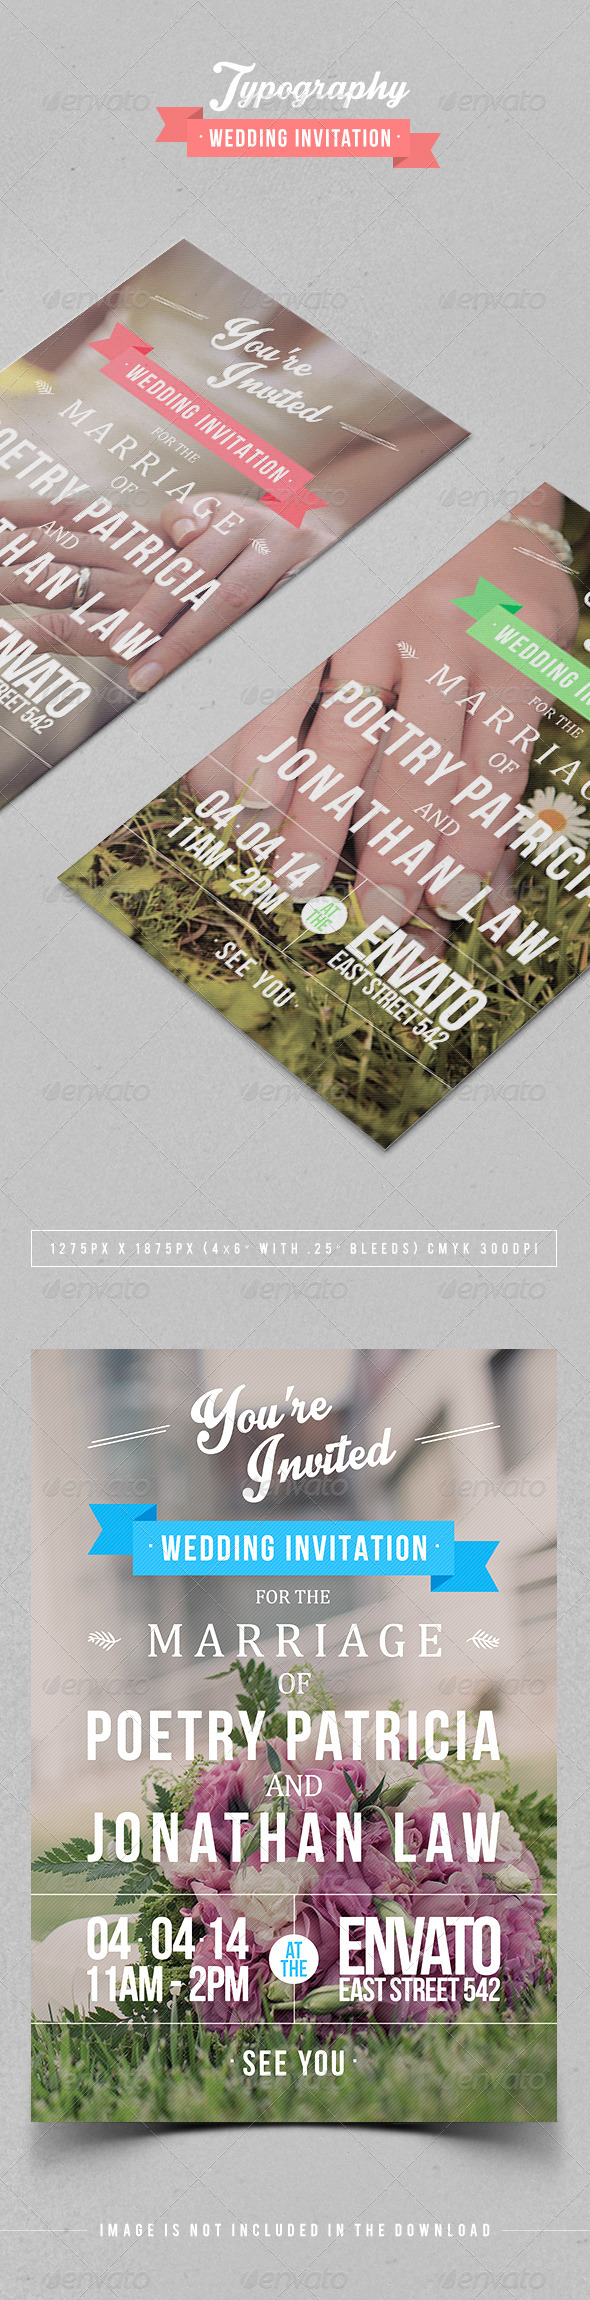 GraphicRiver Typography Wedding Invitation 7104631